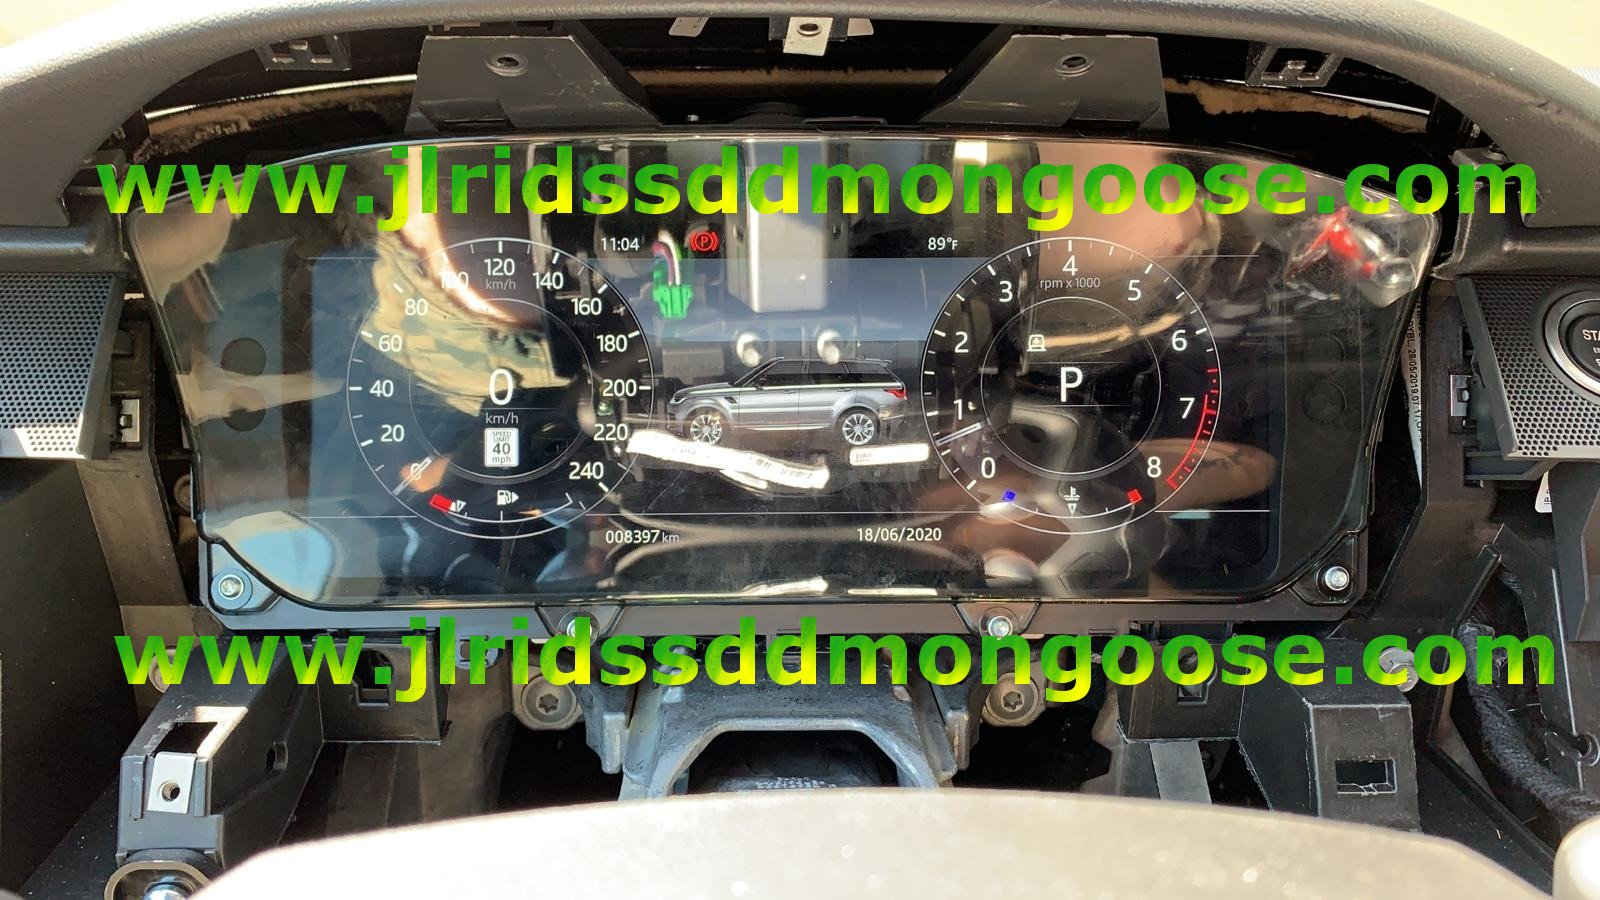 jlridssddmongoose sdd-pathfinder-support-plan-for-km-to-mph-conversion-module-programming-coding-and-training-services/